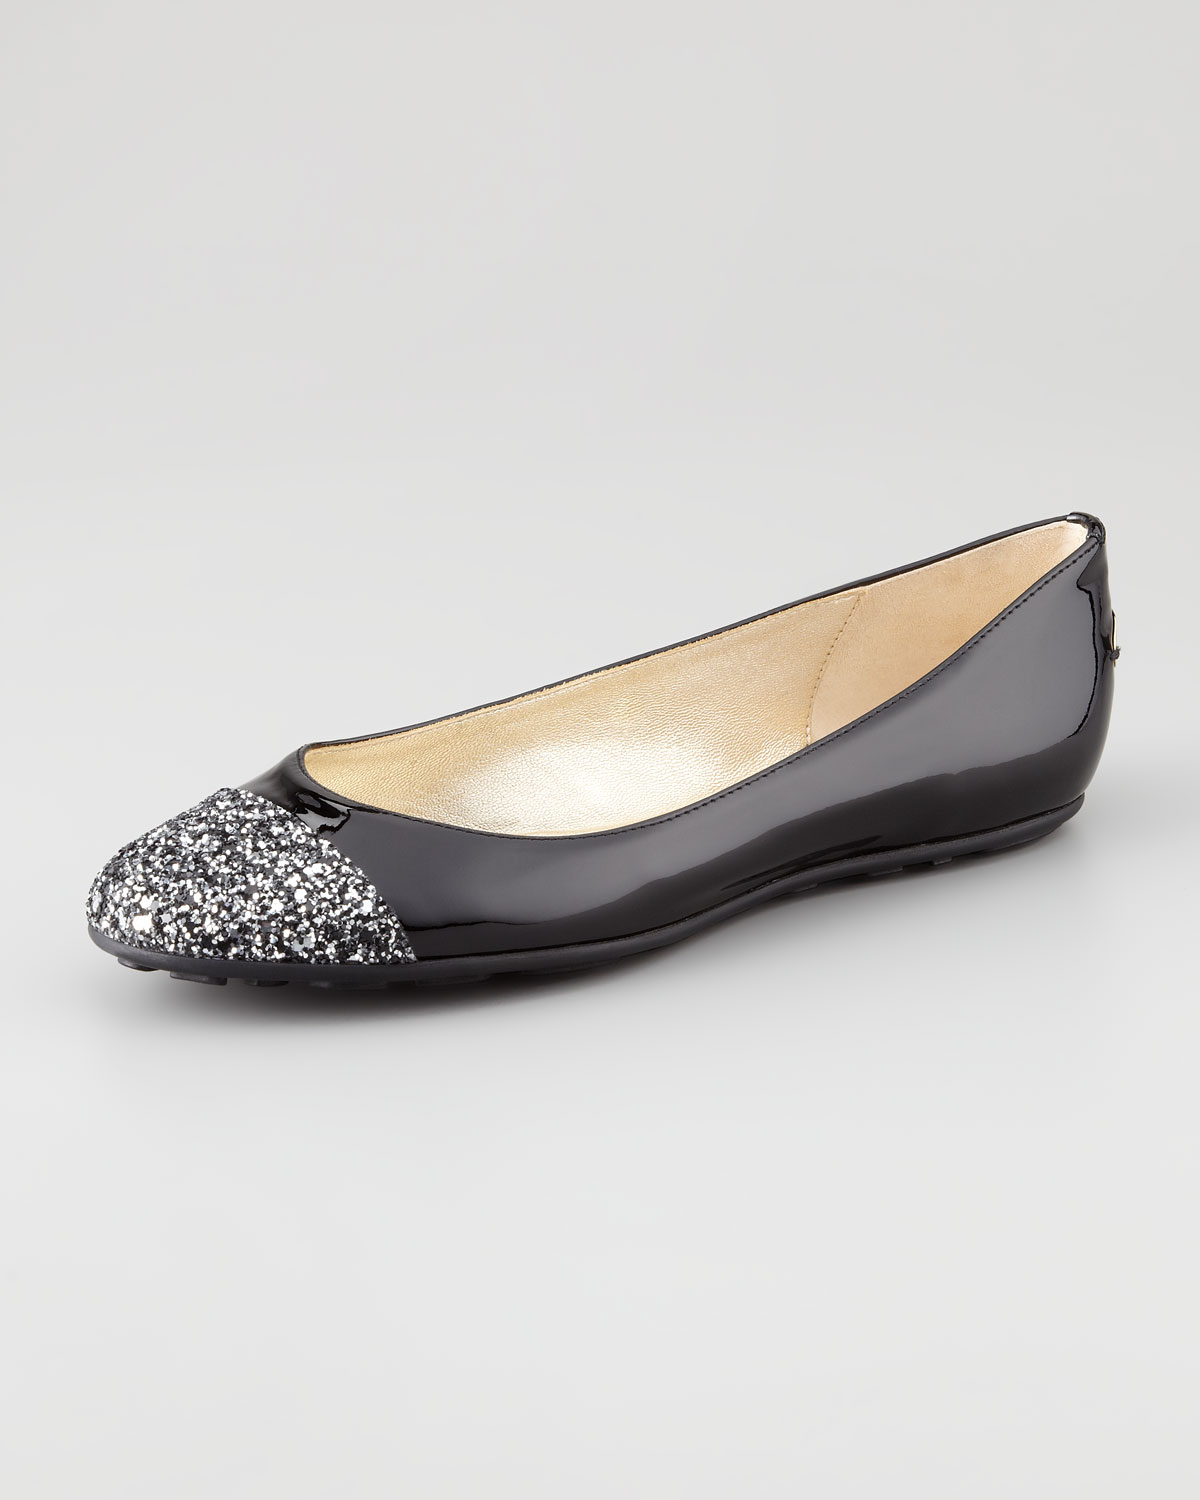 db77f41240 Gallery. Previously sold at: Neiman Marcus · Women's Jimmy Choo Glitter